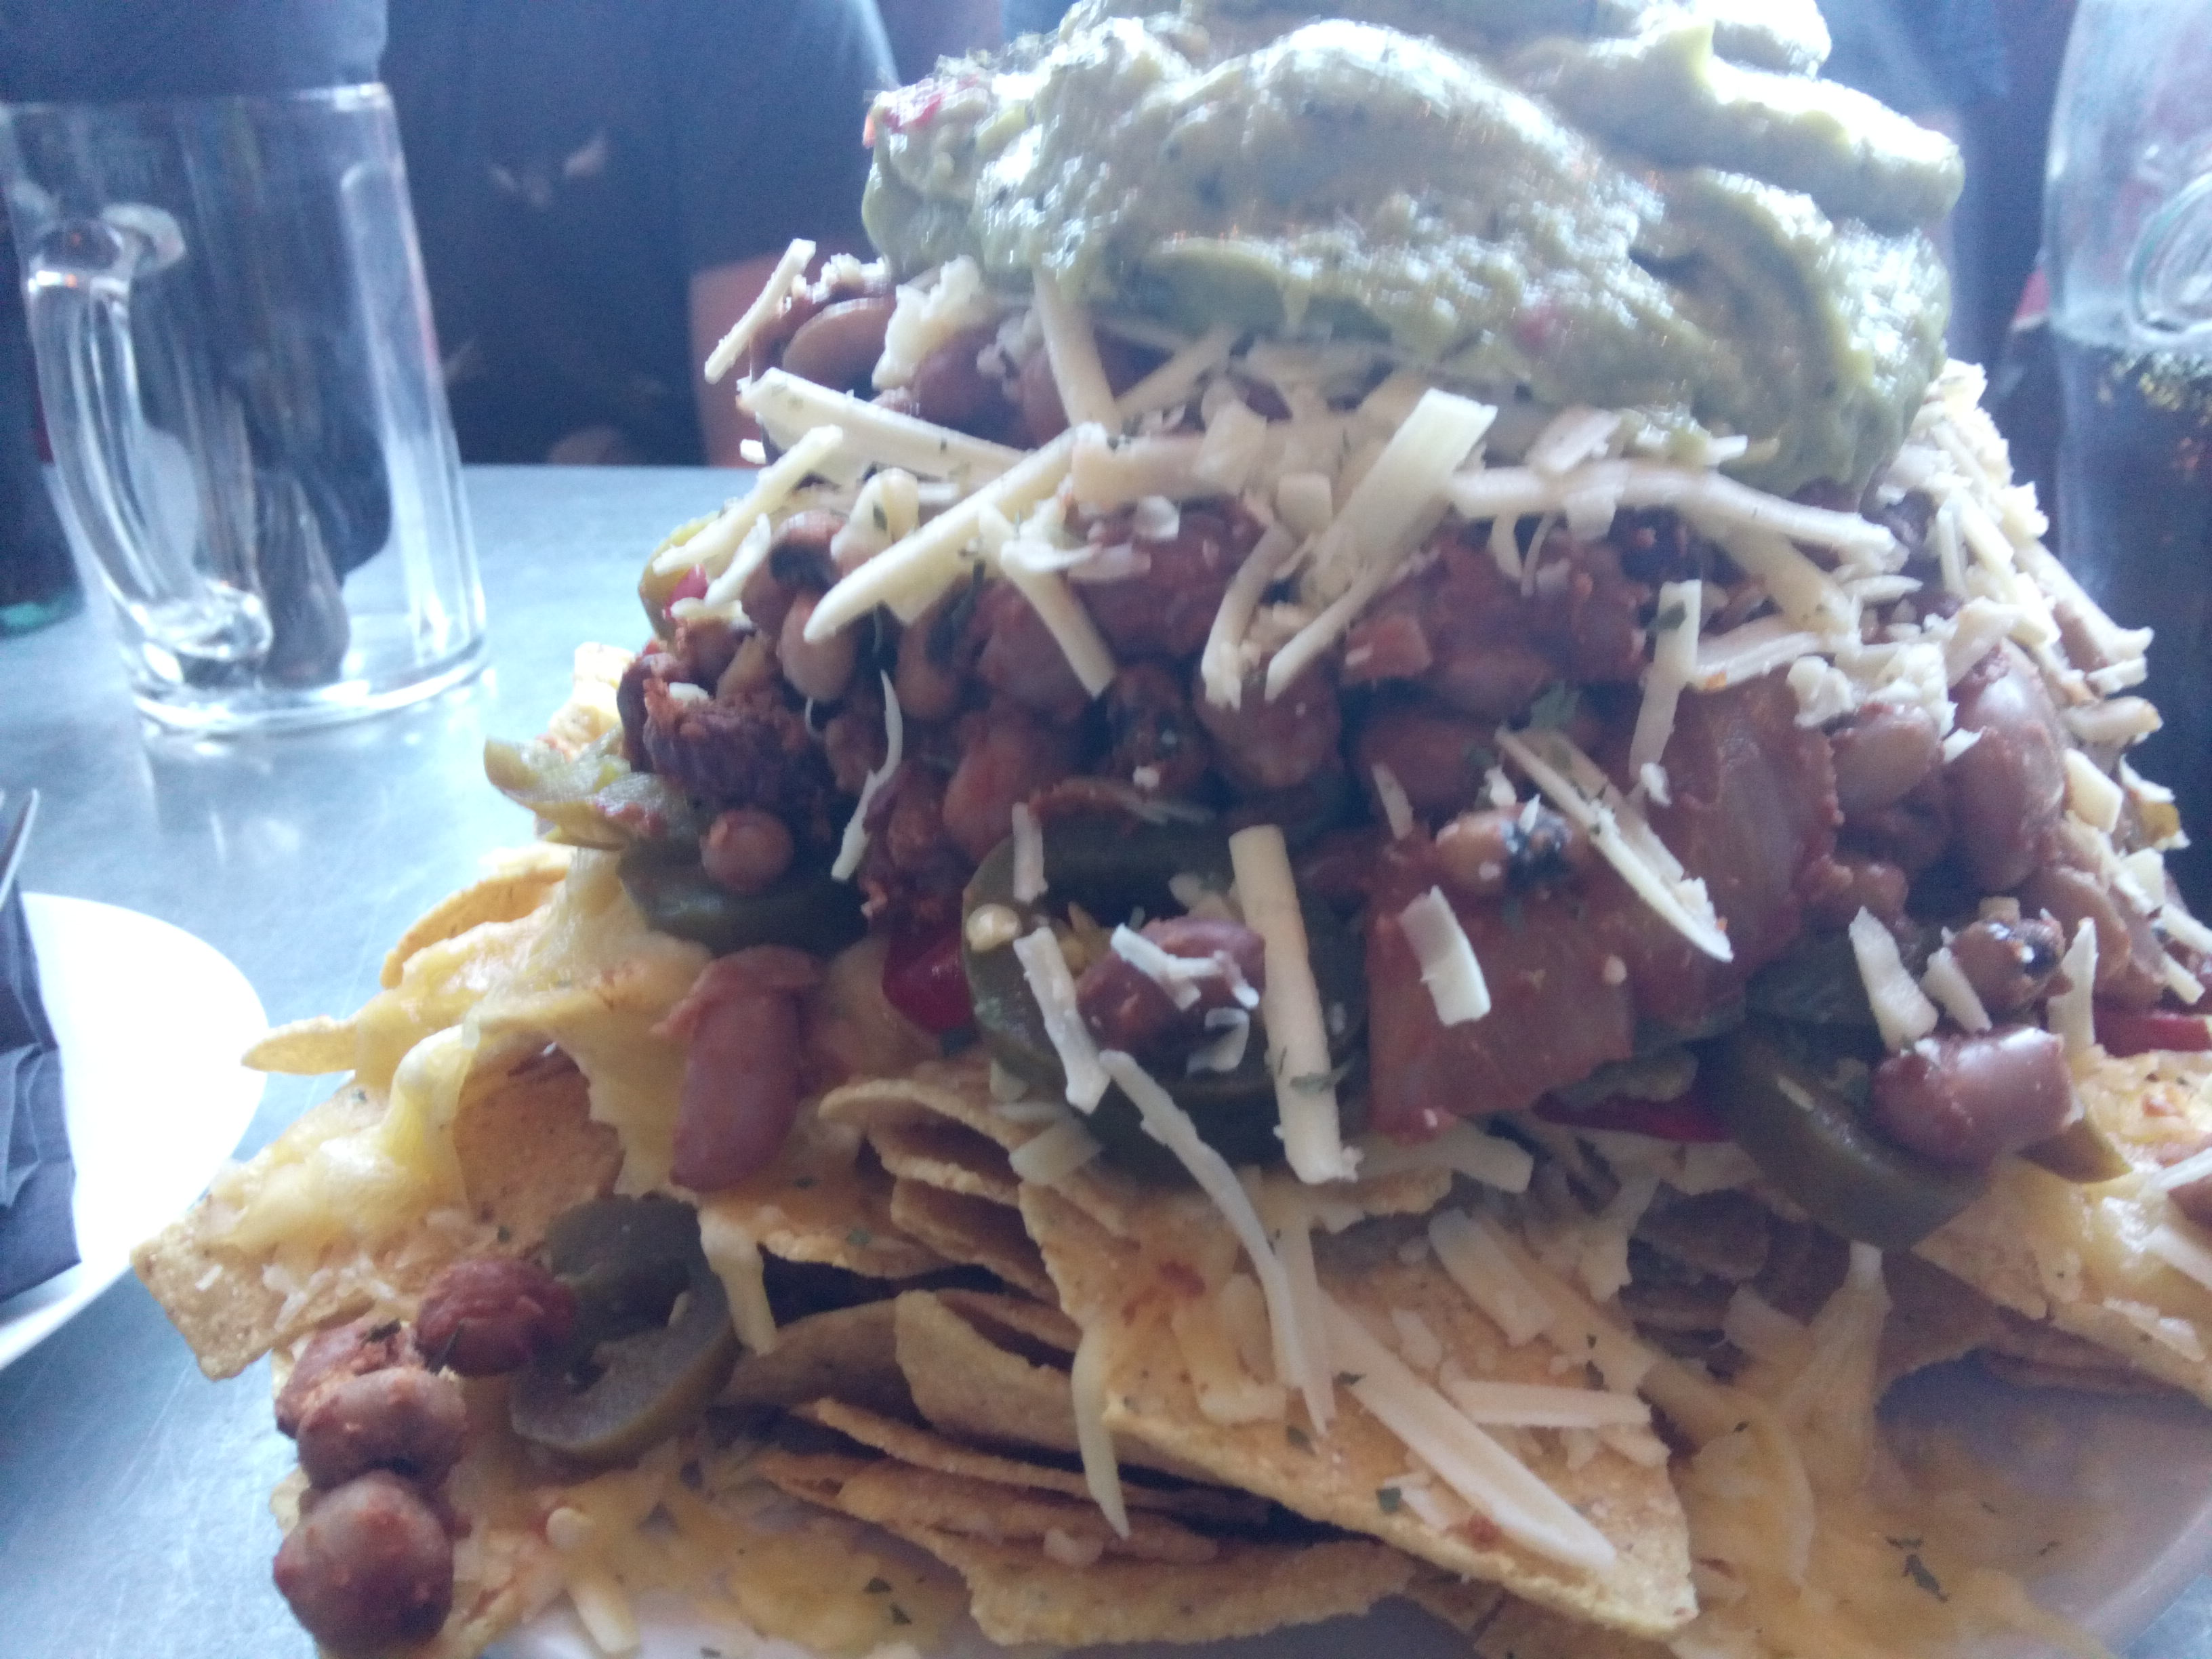 The tower of nachos, but closer